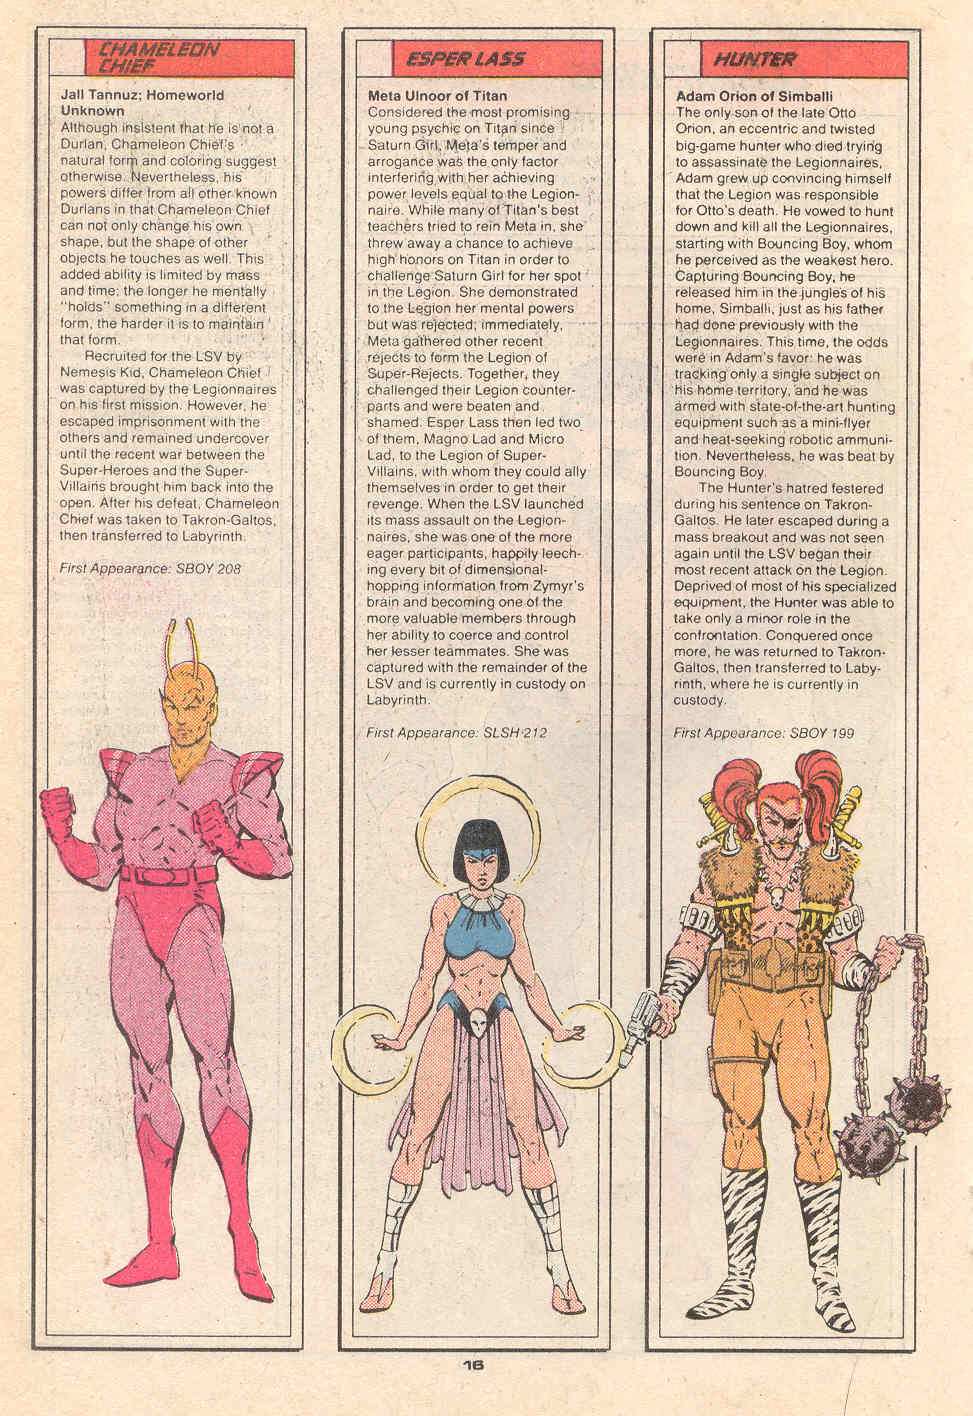 Chameleon Chief, Esper Lass and Hunter by Rob Liefeld and Al Gordon - Who's Who in the Legion of Super-Heroes #4